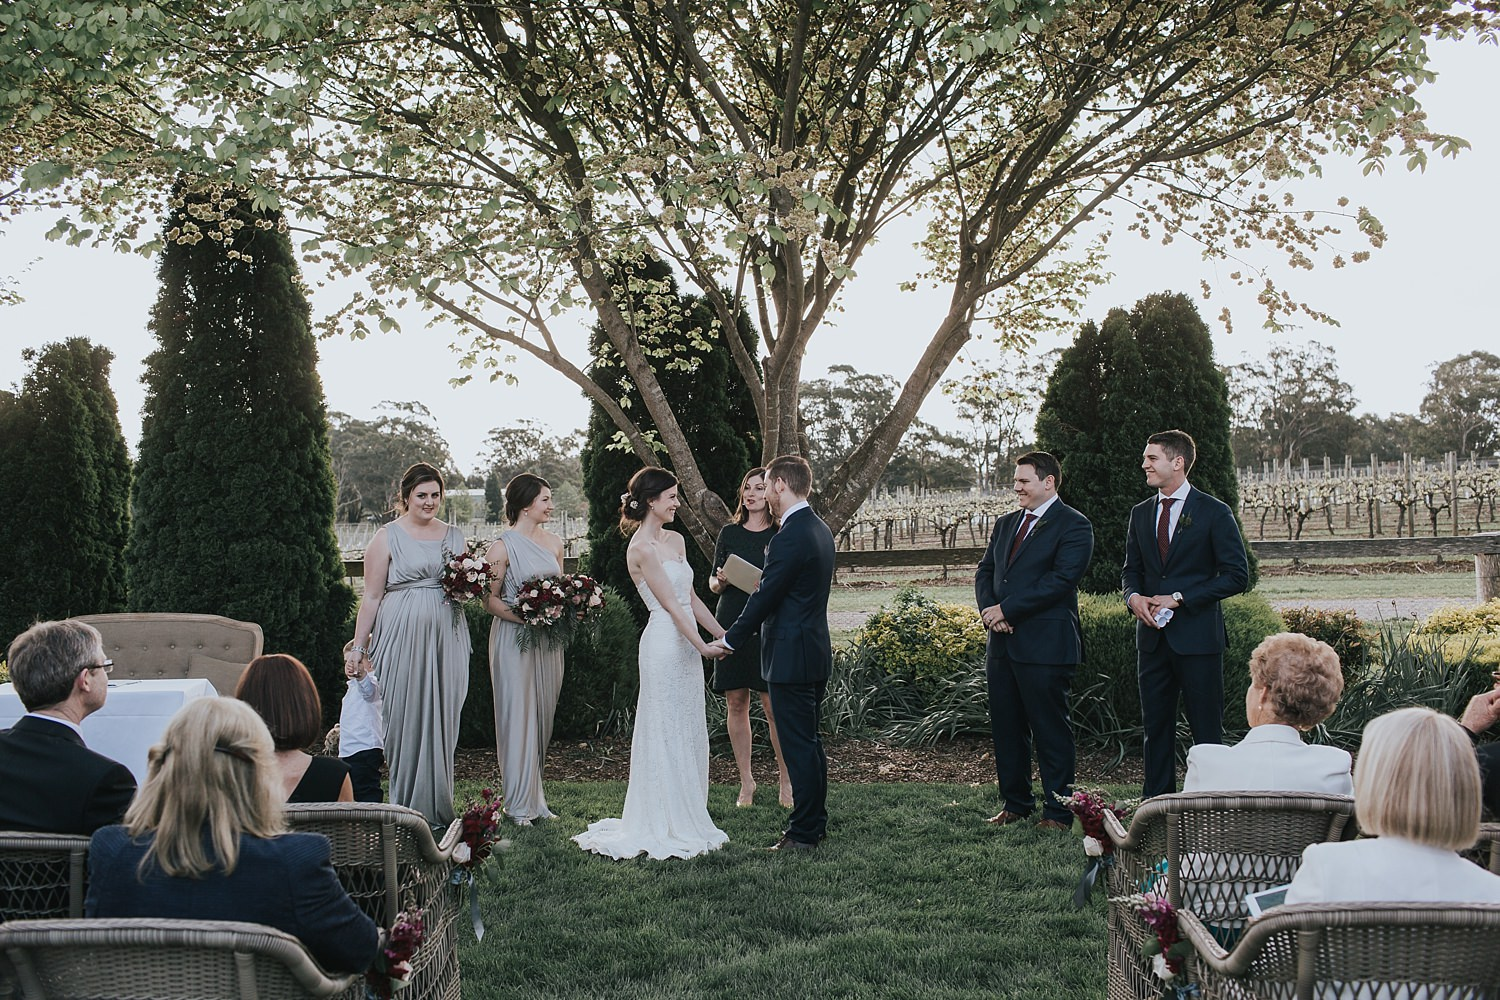 centennial vineyards wedding photography by jonathan david